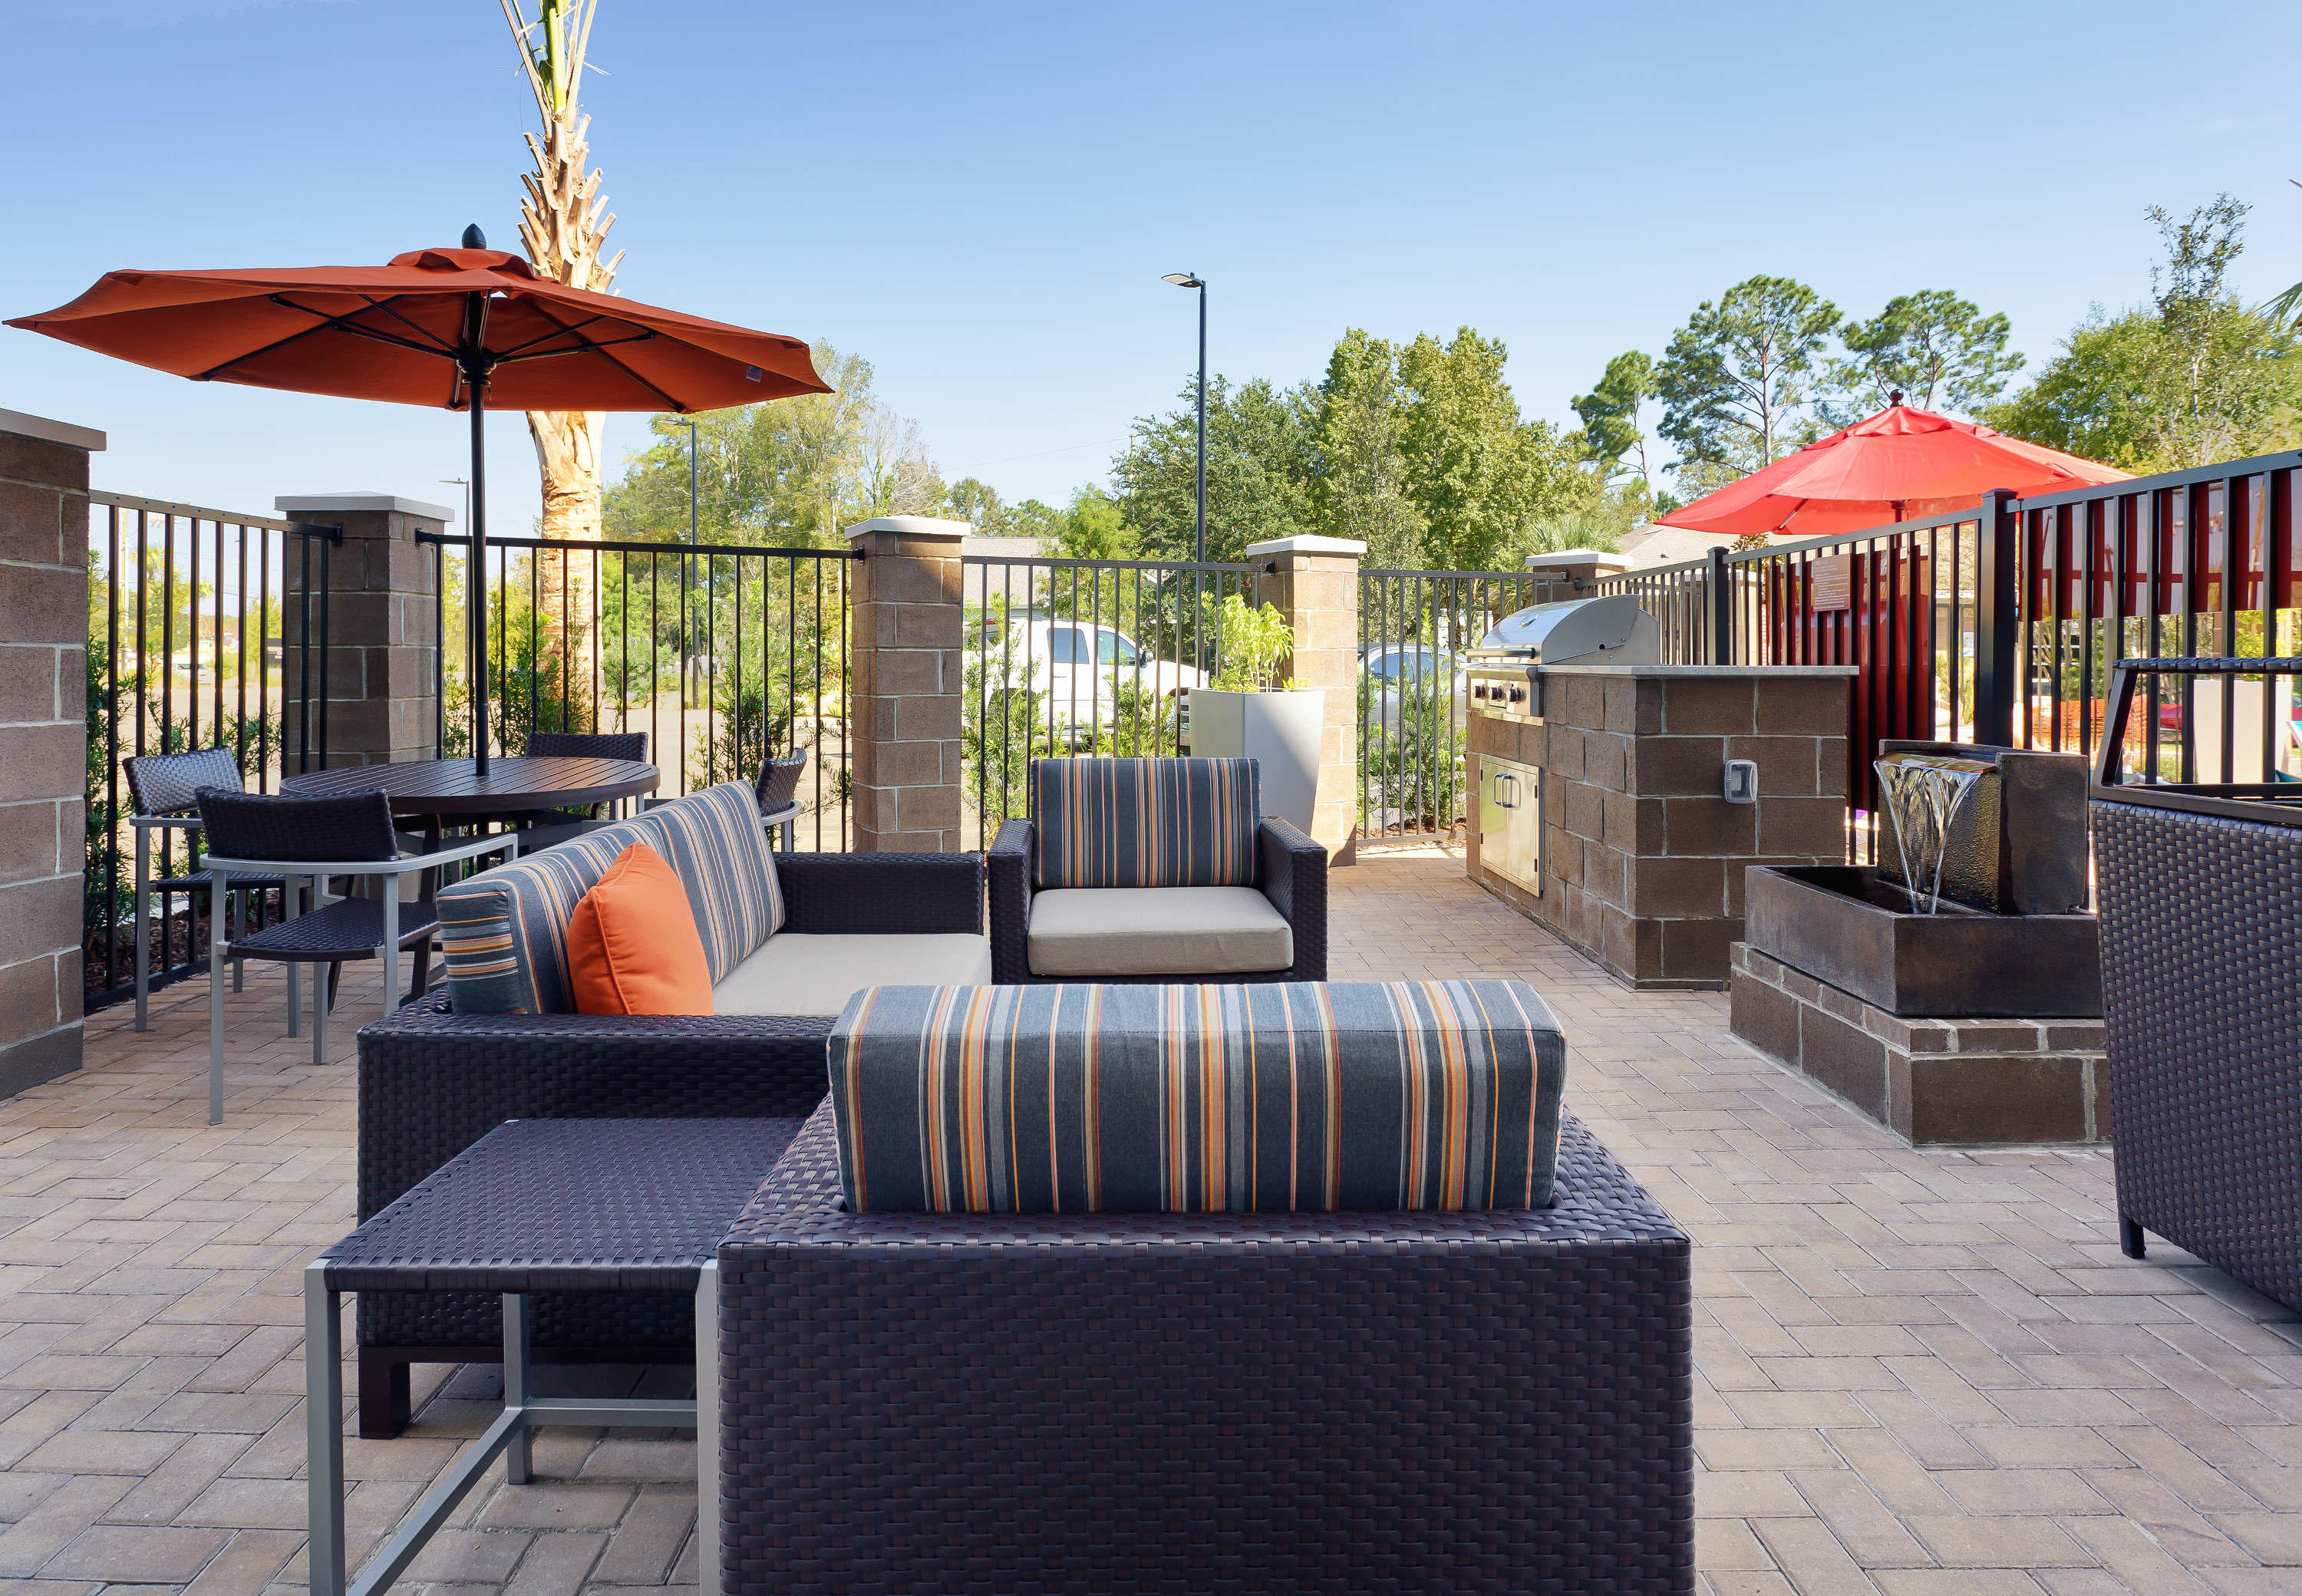 TownePlace Suites by Marriott Charleston Mt. Pleasant image 4